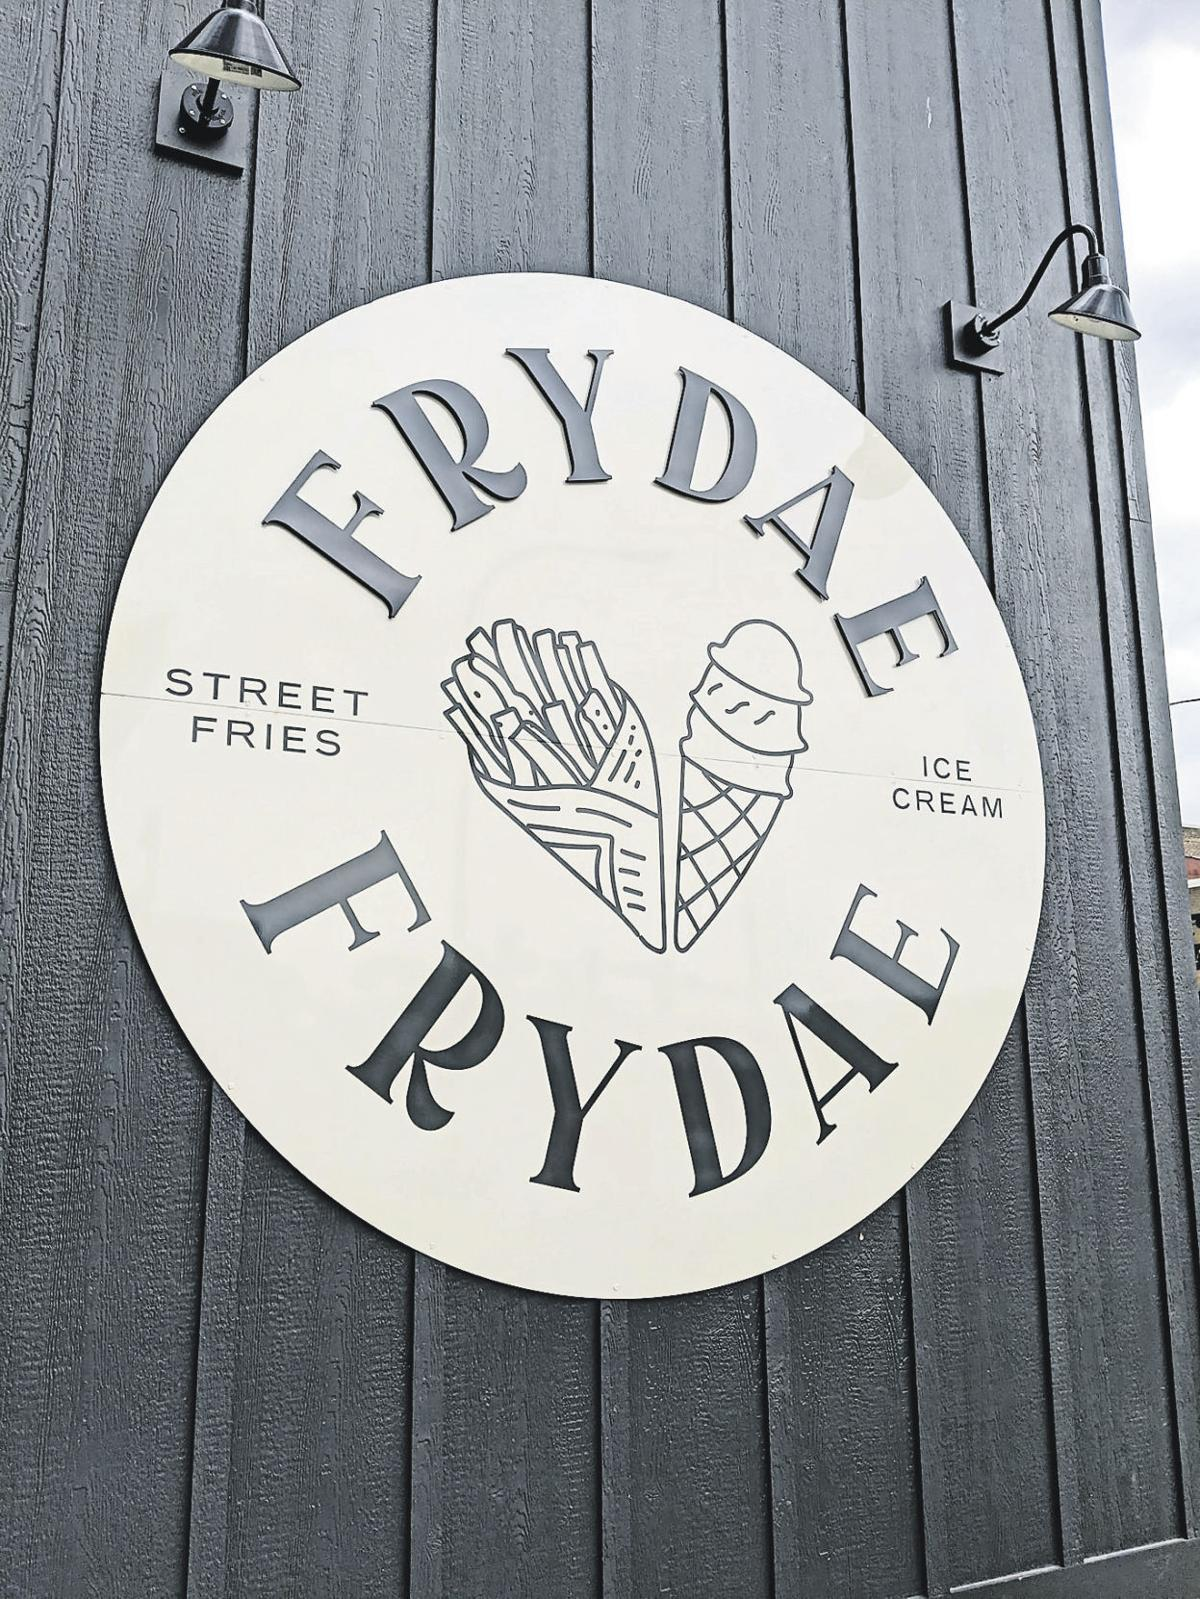 A little sweet with a little salty is the fare at Frydae